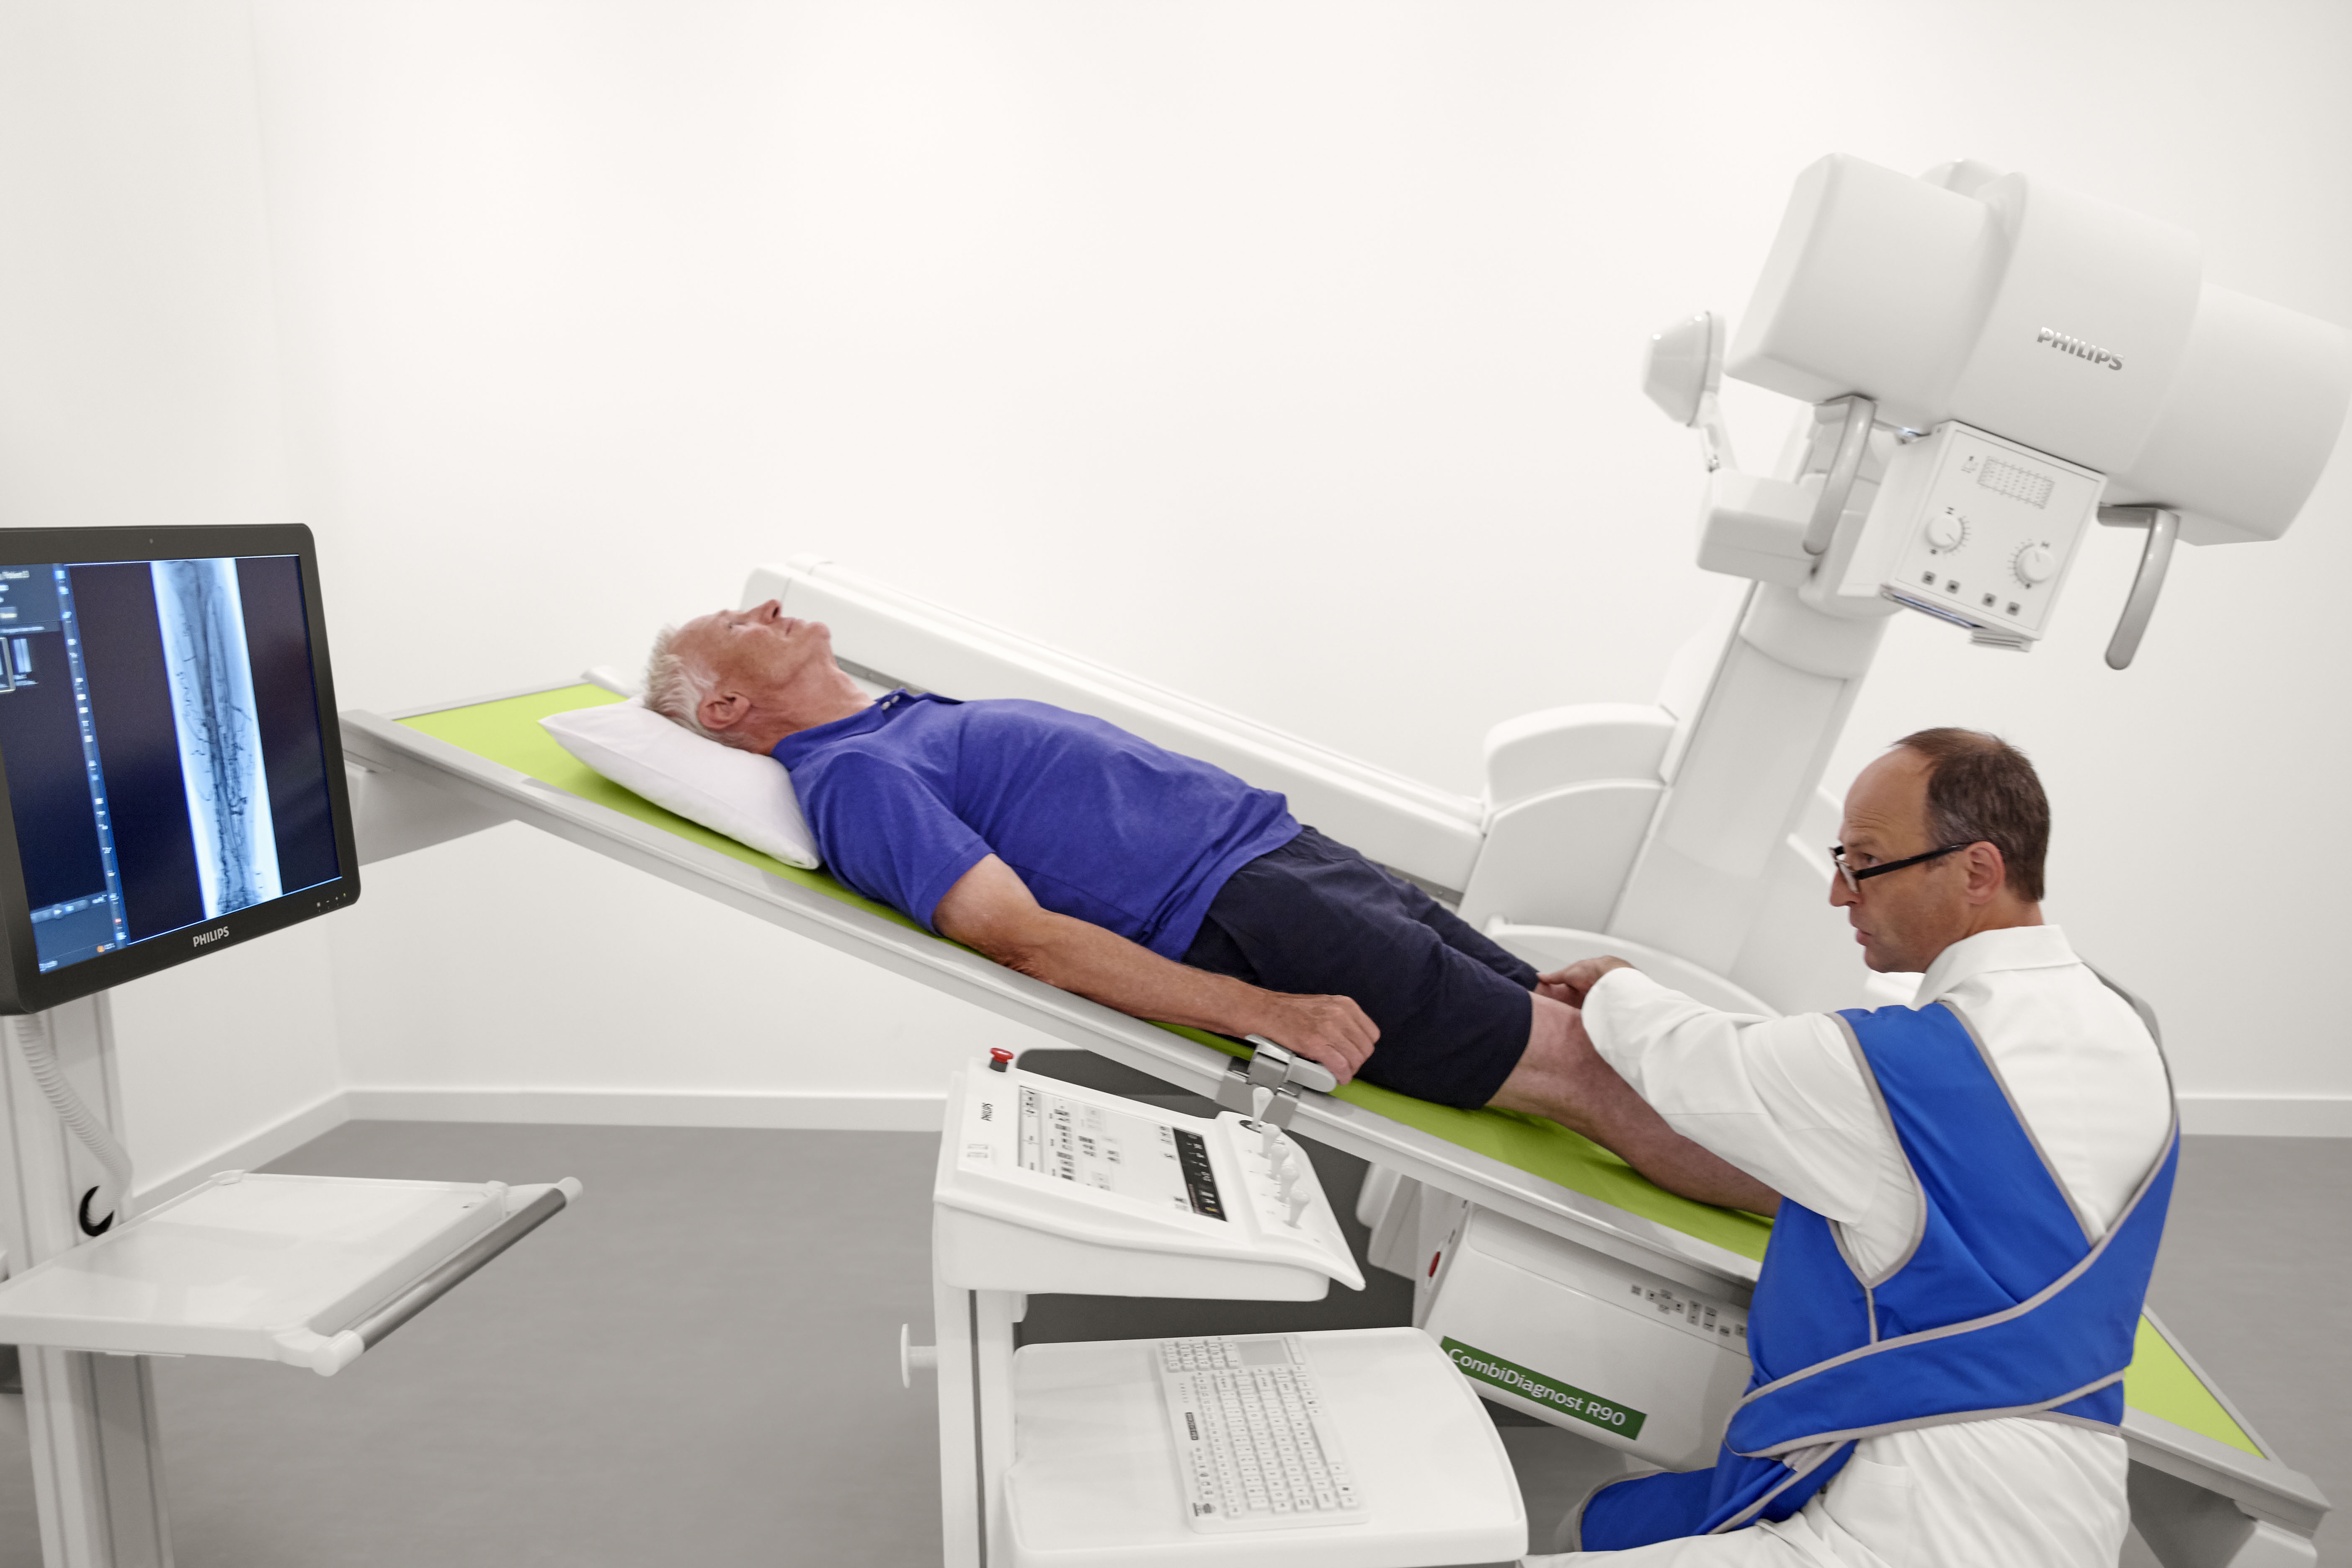 Philips Digital Radiography and Fluoroscopy system (CombiDiagnost R90) in use